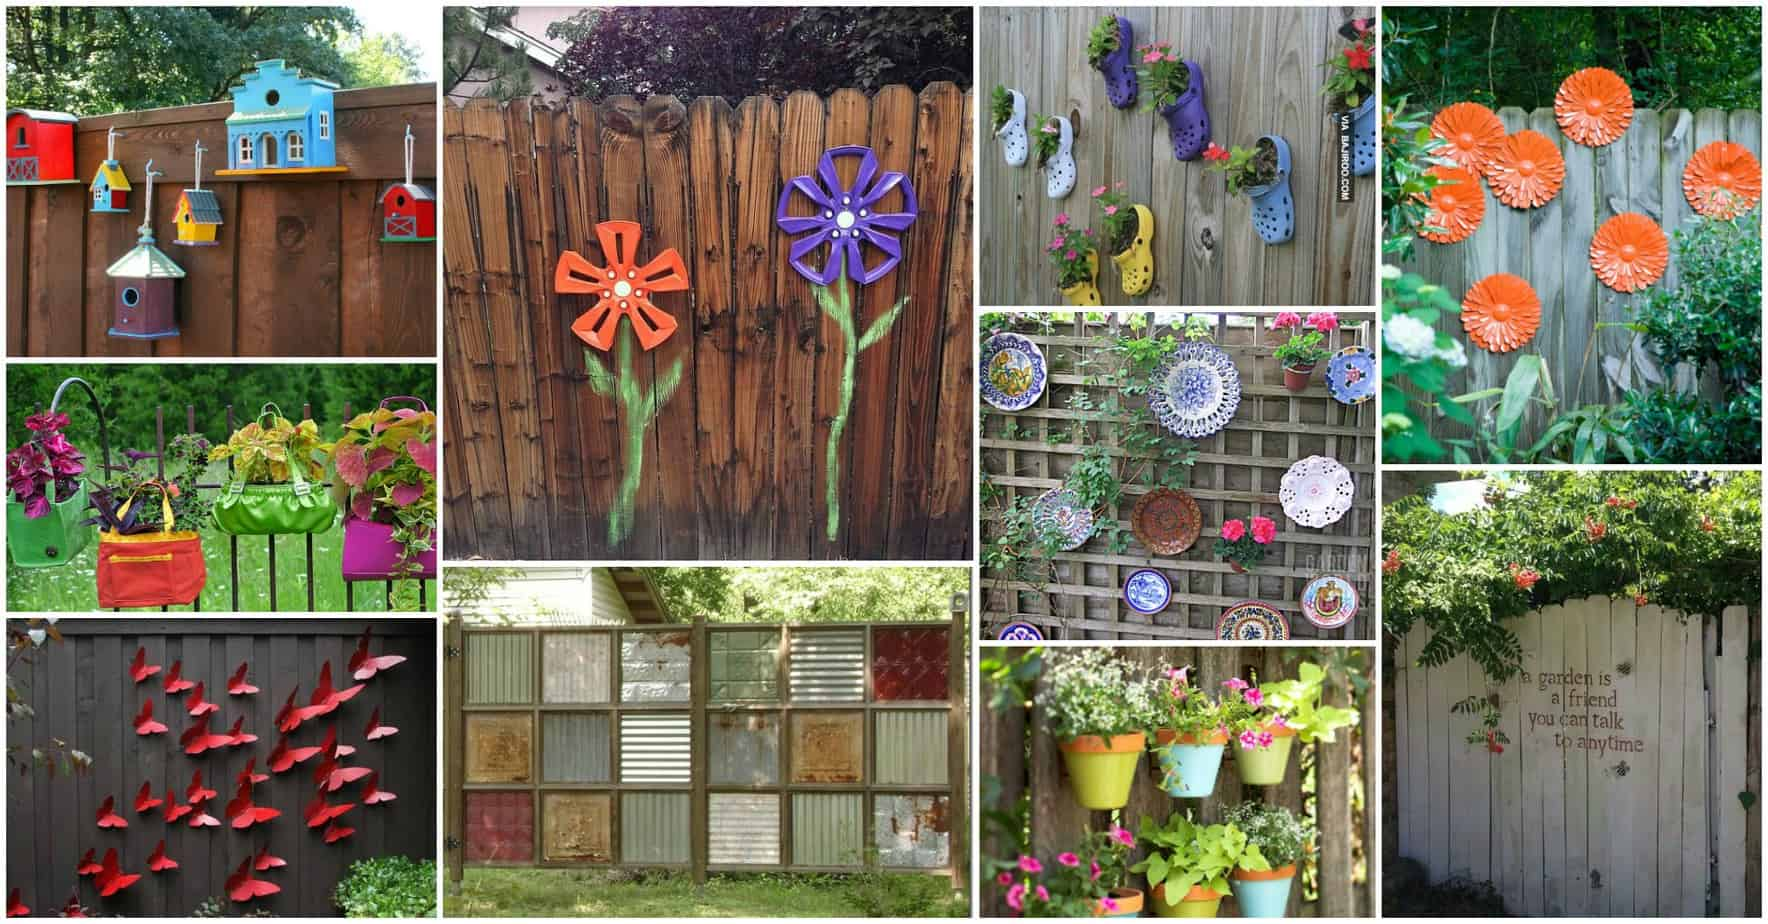 How to Decorate a Fence